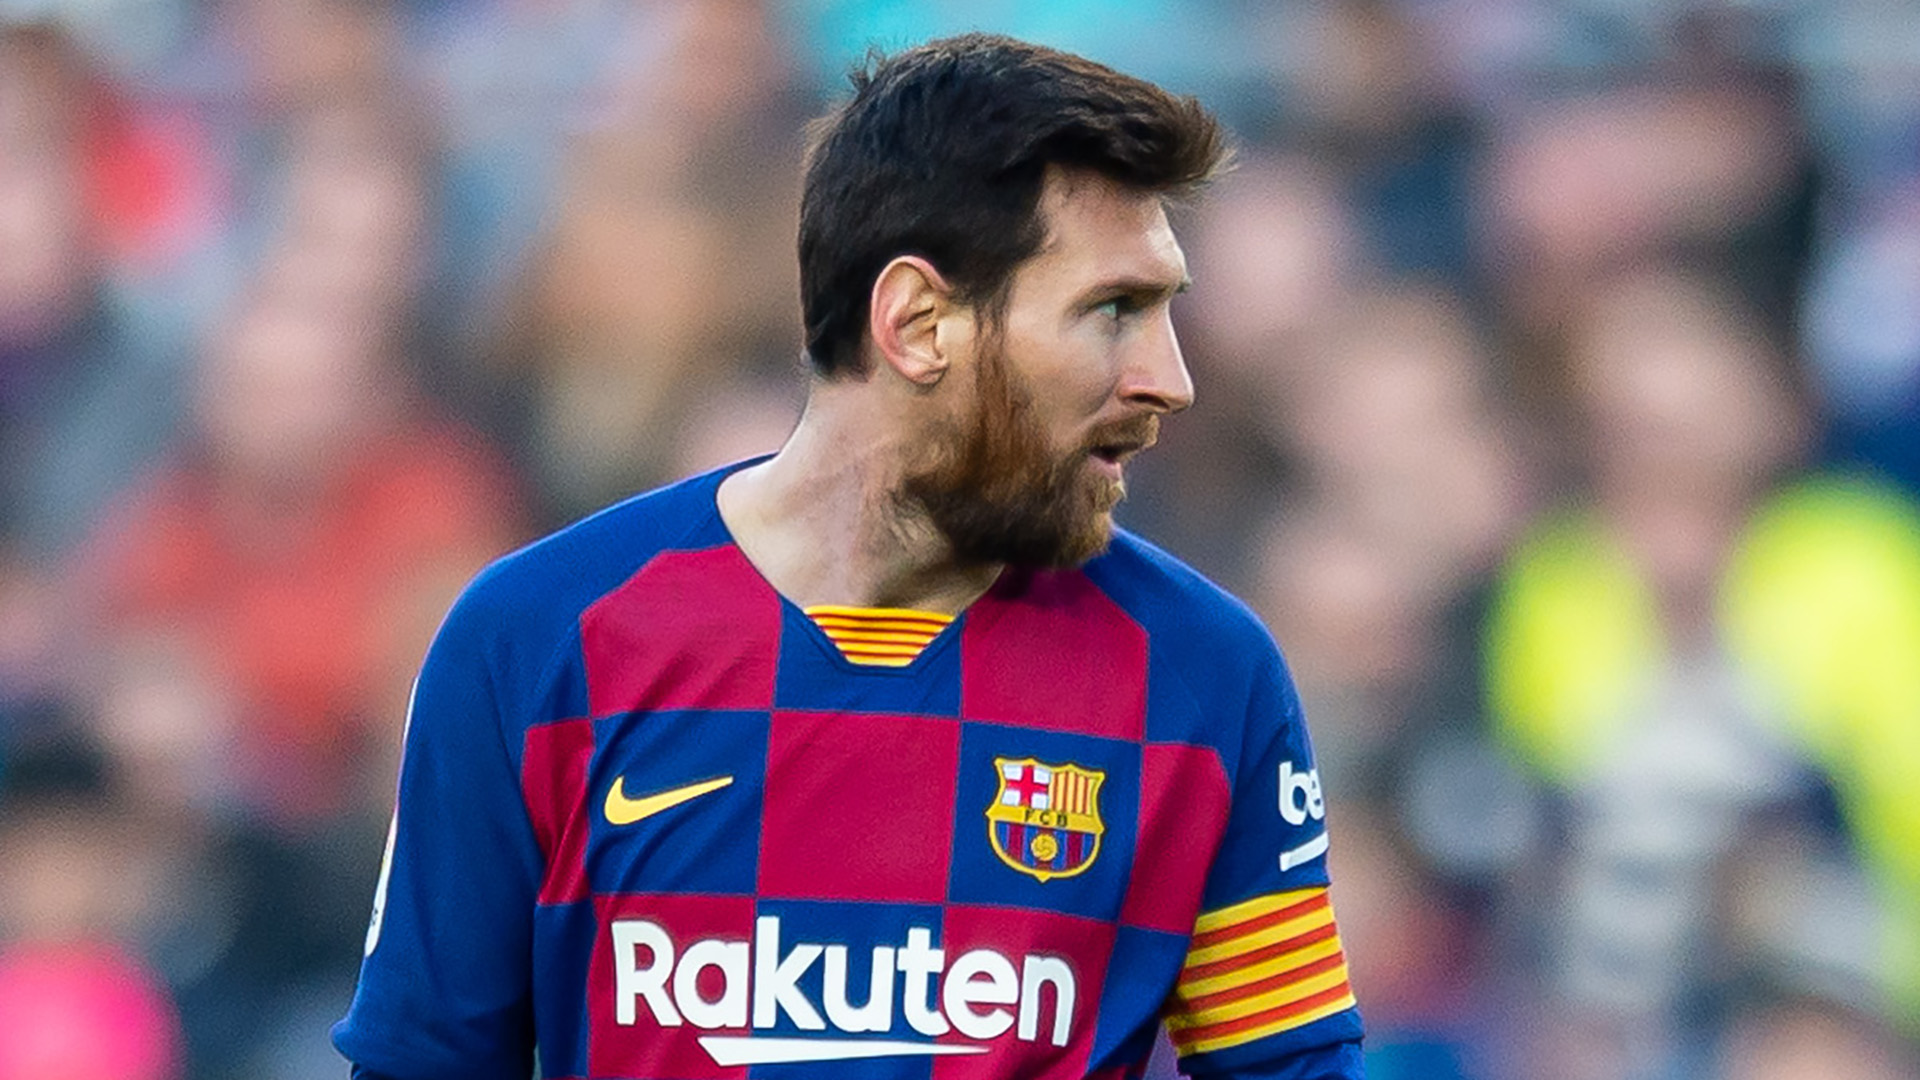 20th season in professional football for the 'king of football' - A tribute to Lionel Messi